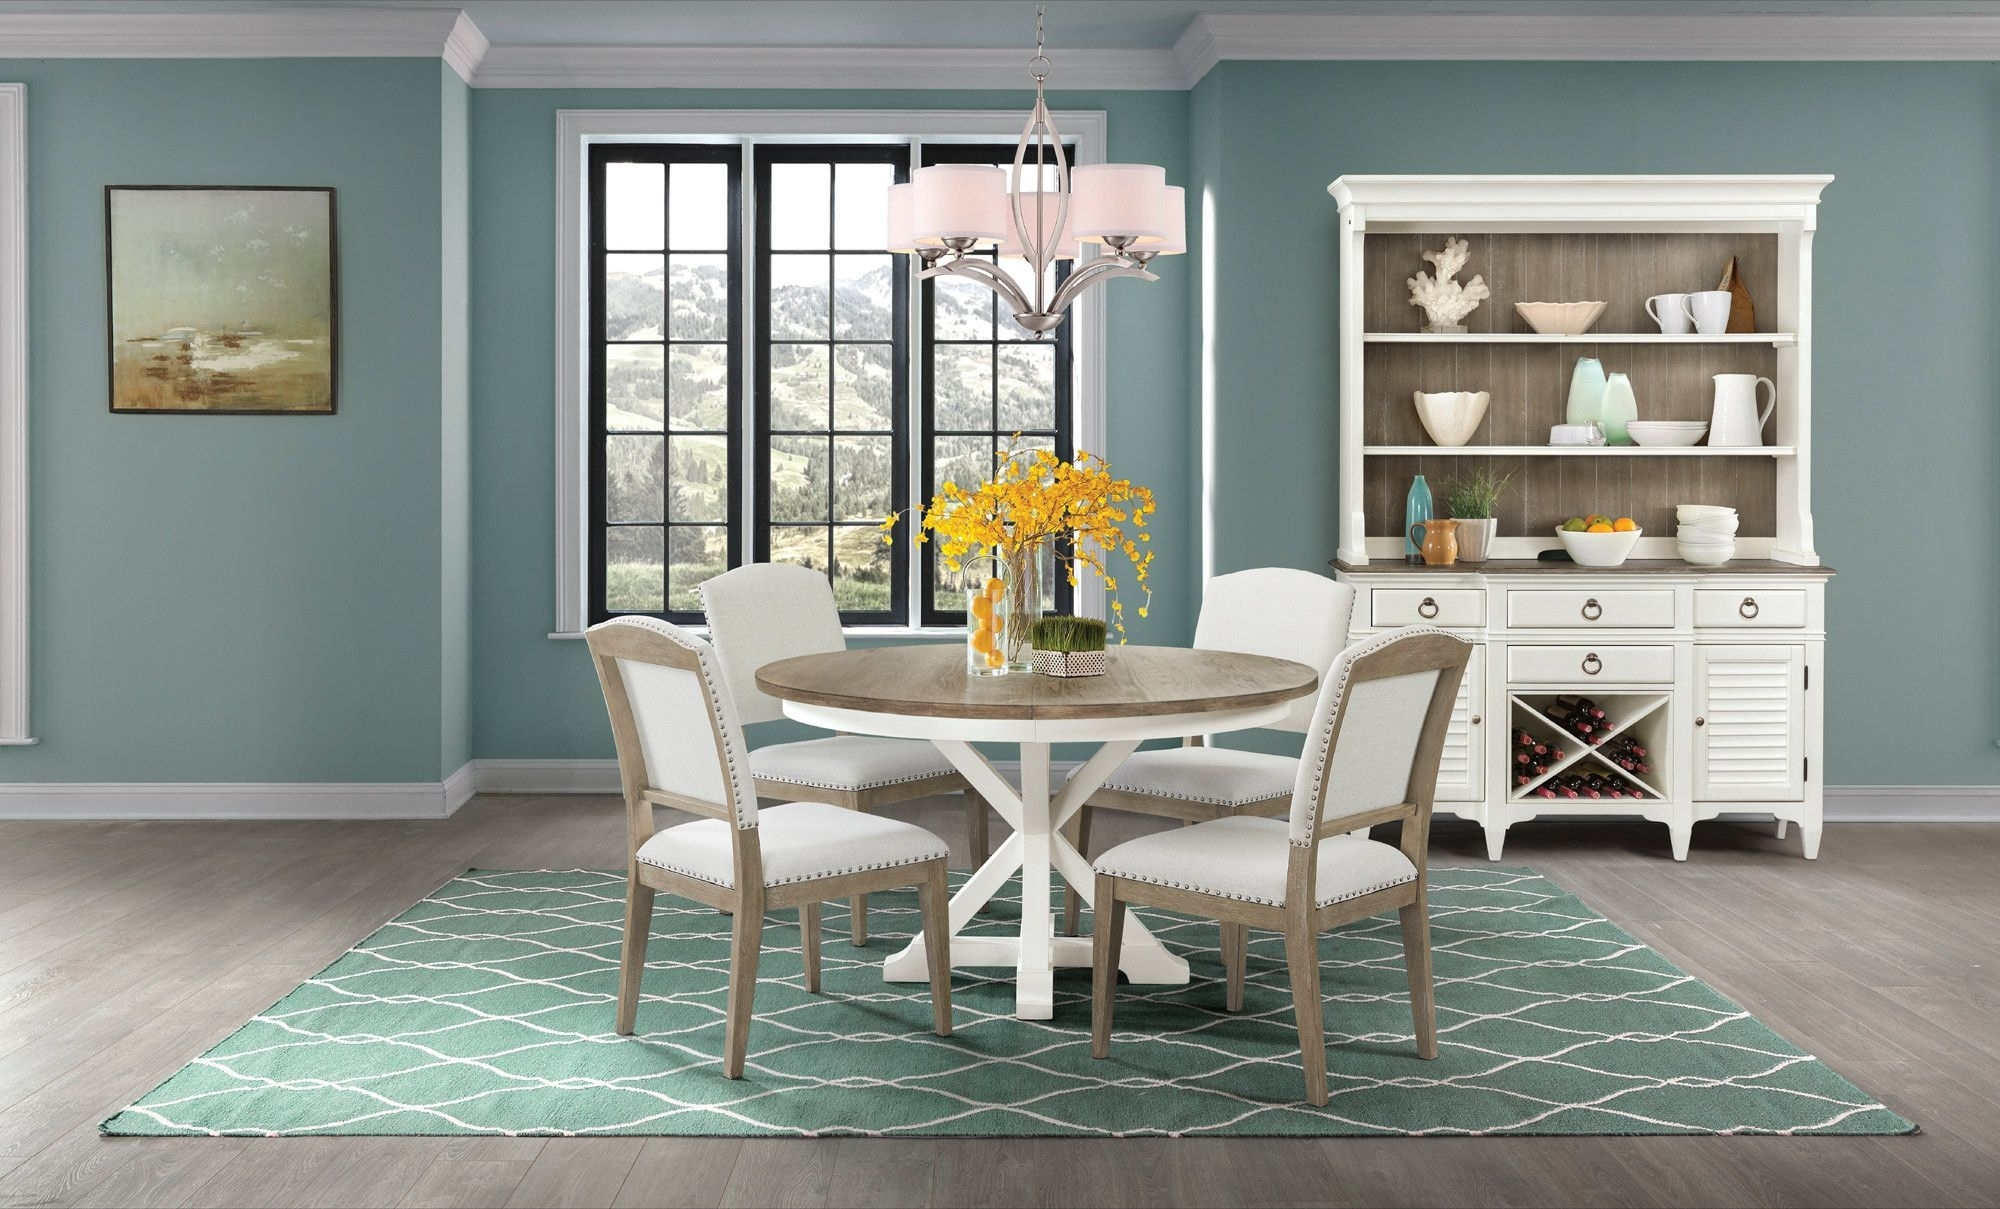 Myra Round Dining Table Set | Riverside Furniture | Home Gallery Intended For Latest Candice Ii 5 Piece Round Dining Sets With Slat Back Side Chairs (View 19 of 20)